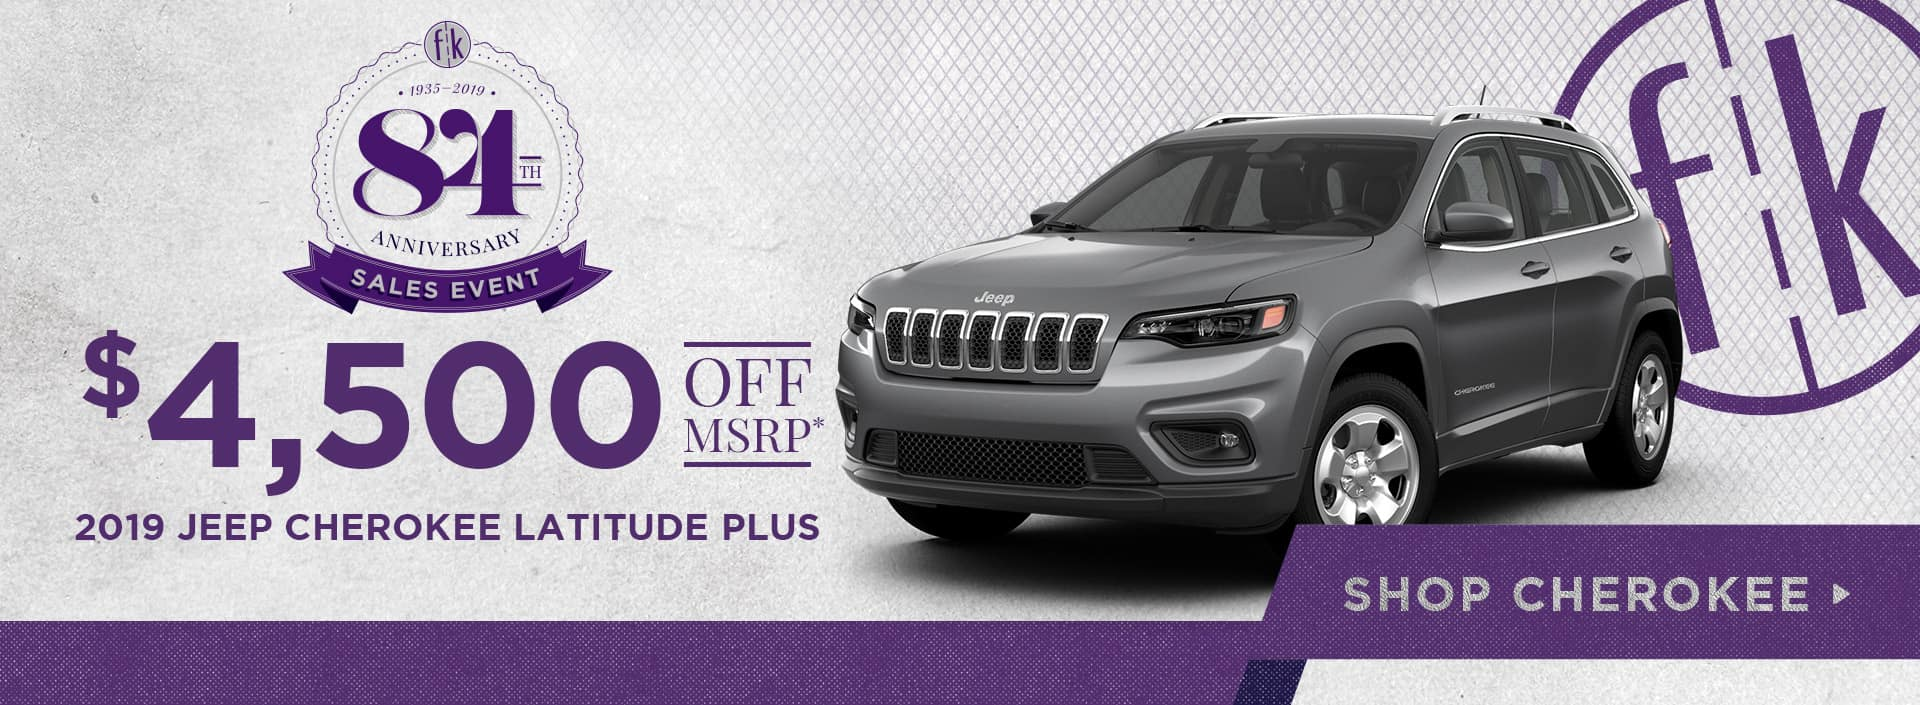 $4,500 Off 2019 Jeep Cherokee Latitude Plus